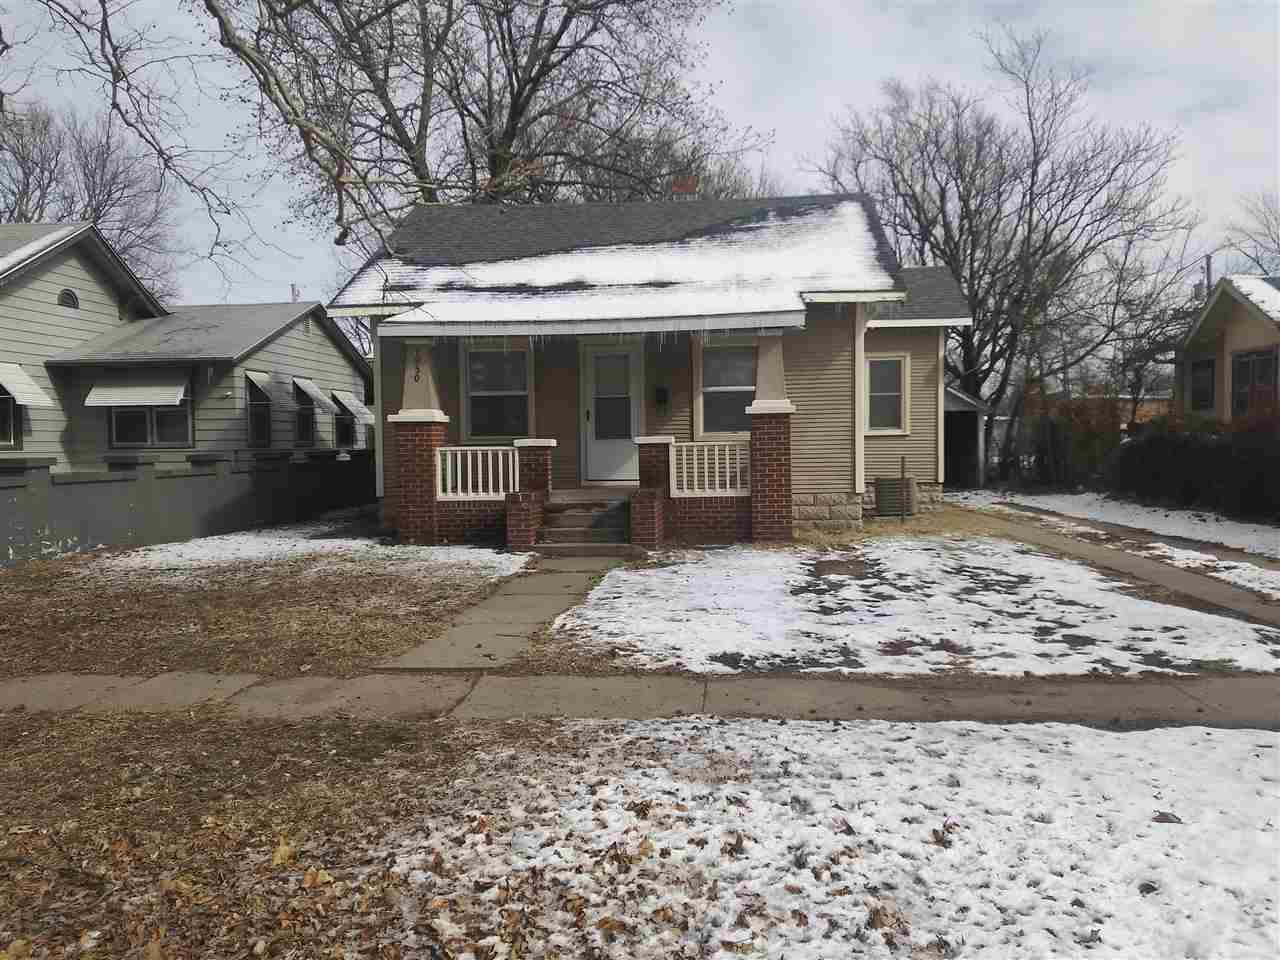 MOVE-IN READY.  NEWER KITCHEN APPLIANCES AND HVAC.  OWNER HAS OWNED PROPERTY FOR OVER 30 YEARS.  NEW